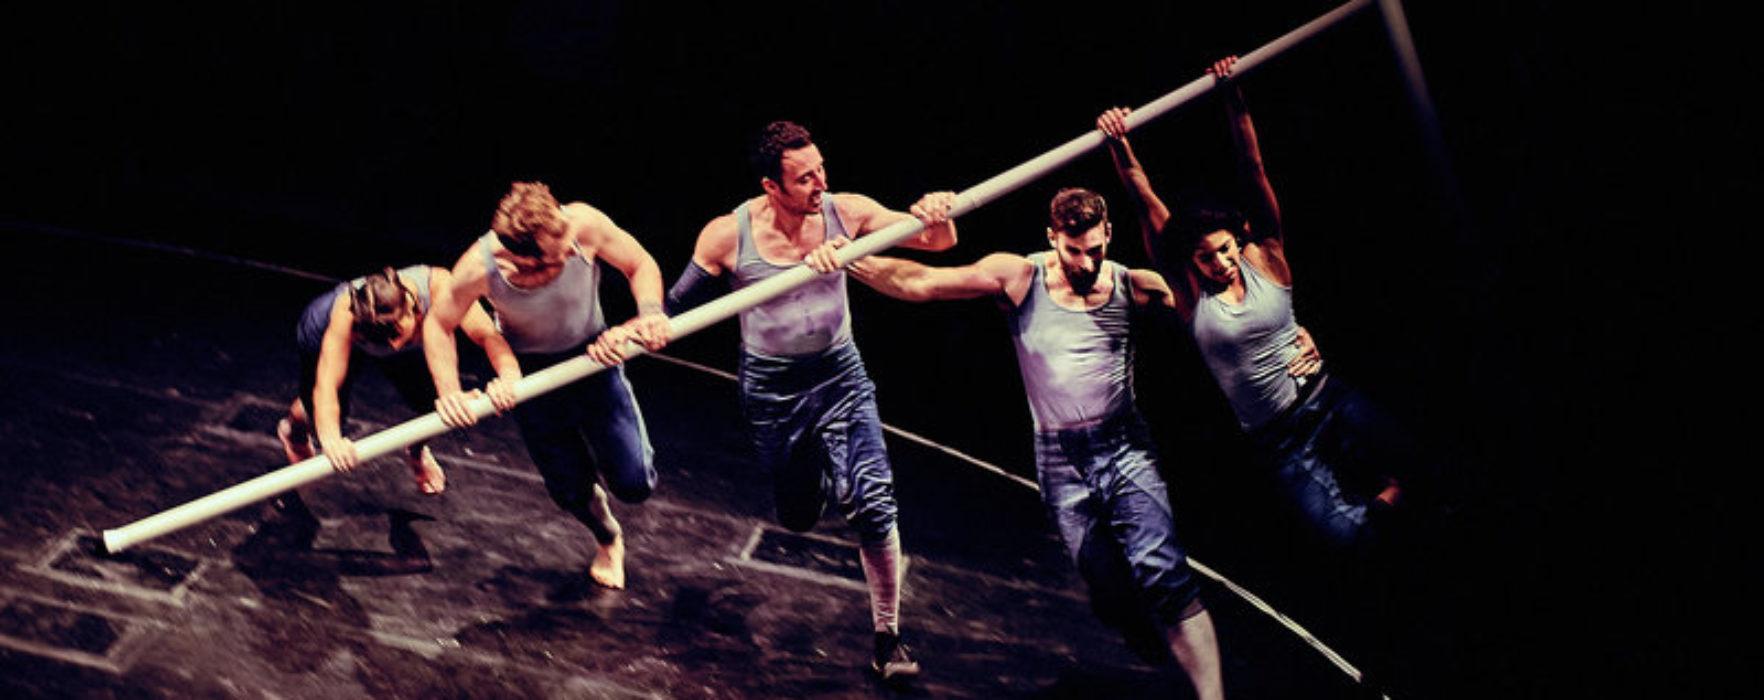 Daring Aerial Double Bill- Summer Only!